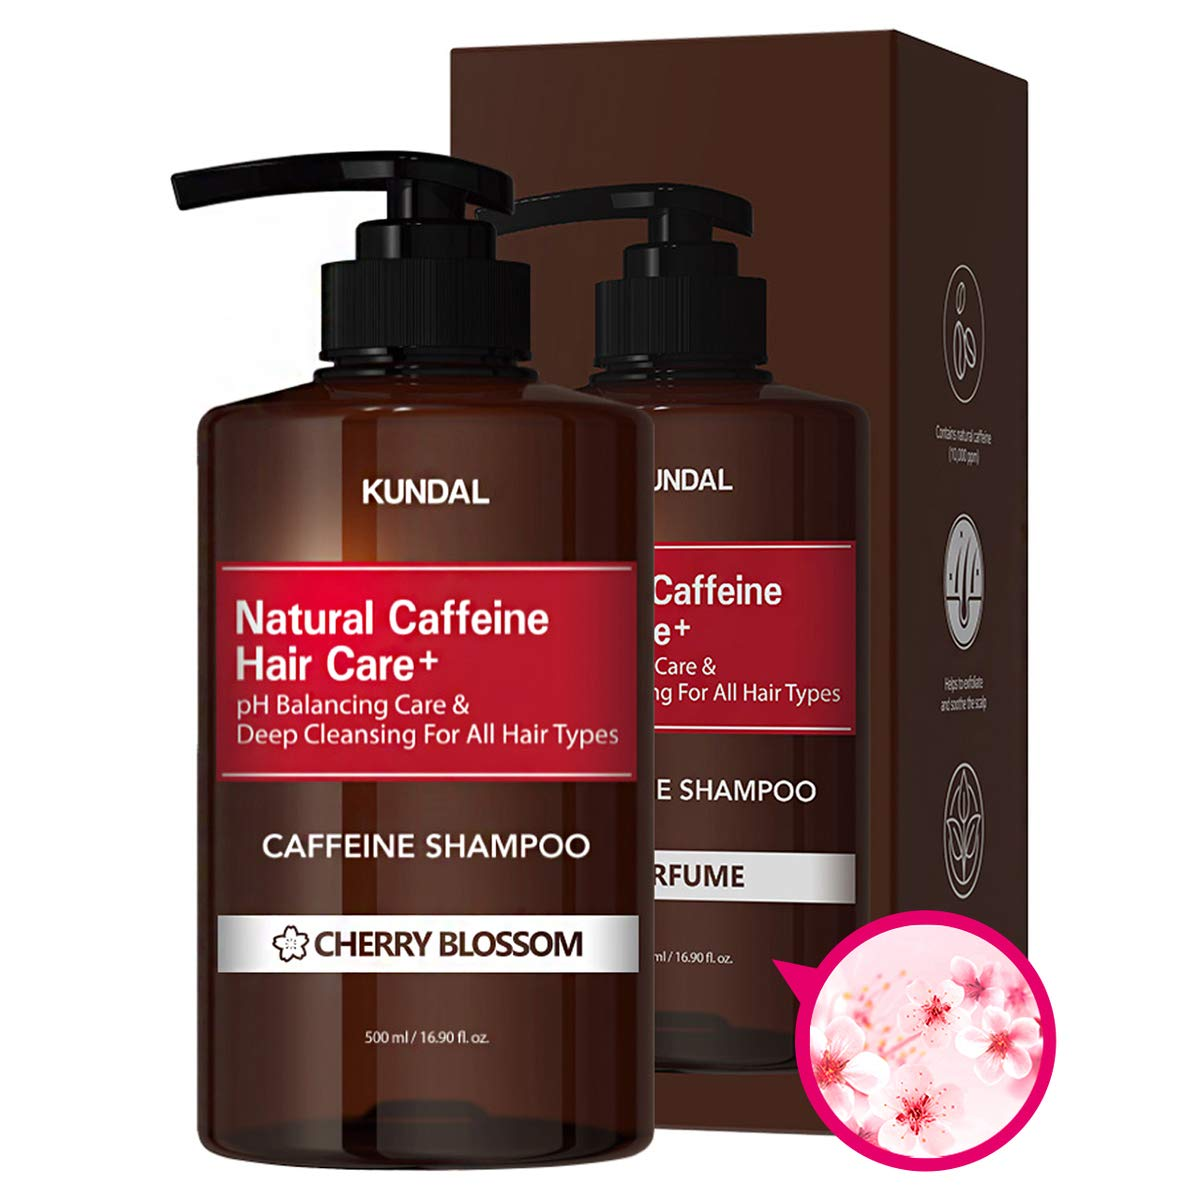 KUNDAL CAFFEINE Outlet sale gift feature ANTI-HAIR LOSS SHAMPOO Scalp Care Deep Cleansing